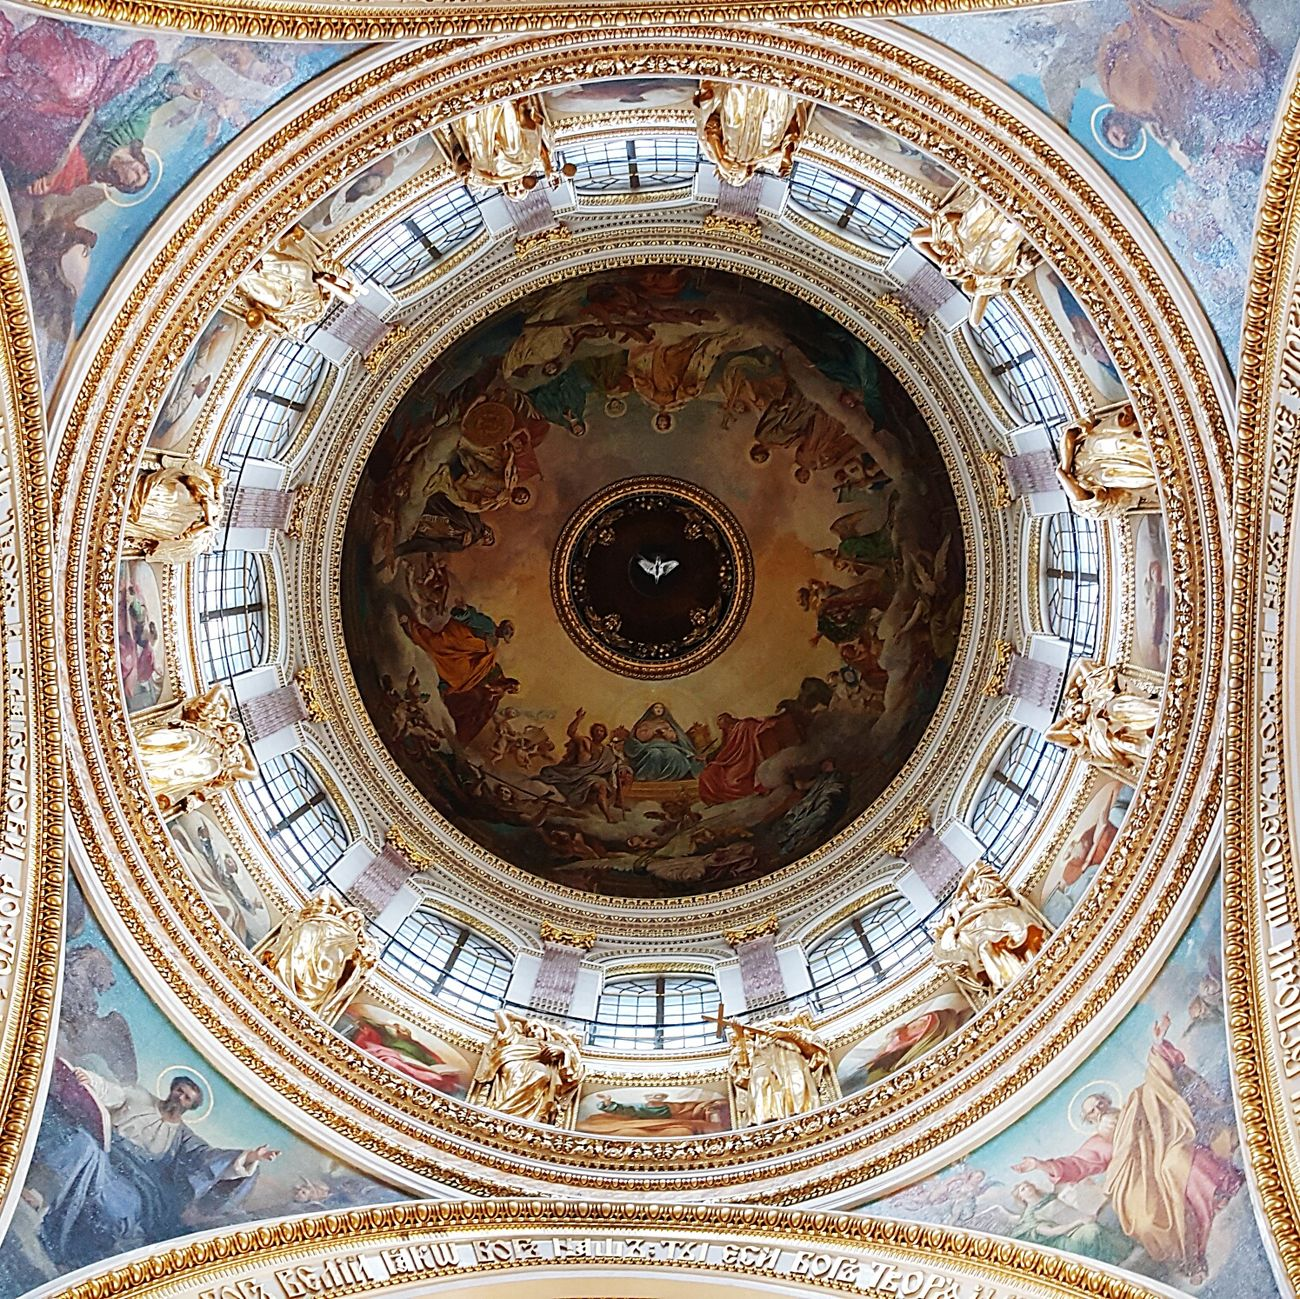 Isaac's Cathedral Architectural Feature Architecture Ceiling Low Angle View Built Structure Architectural Feature Indoors  Religion Cathedral Ornate Directly Below Design Arch Place Of Worship Church Architectural Design Culture Dome Architecture And Art History Full Frame Saint-Petersburg Anichkov Bridge Memories